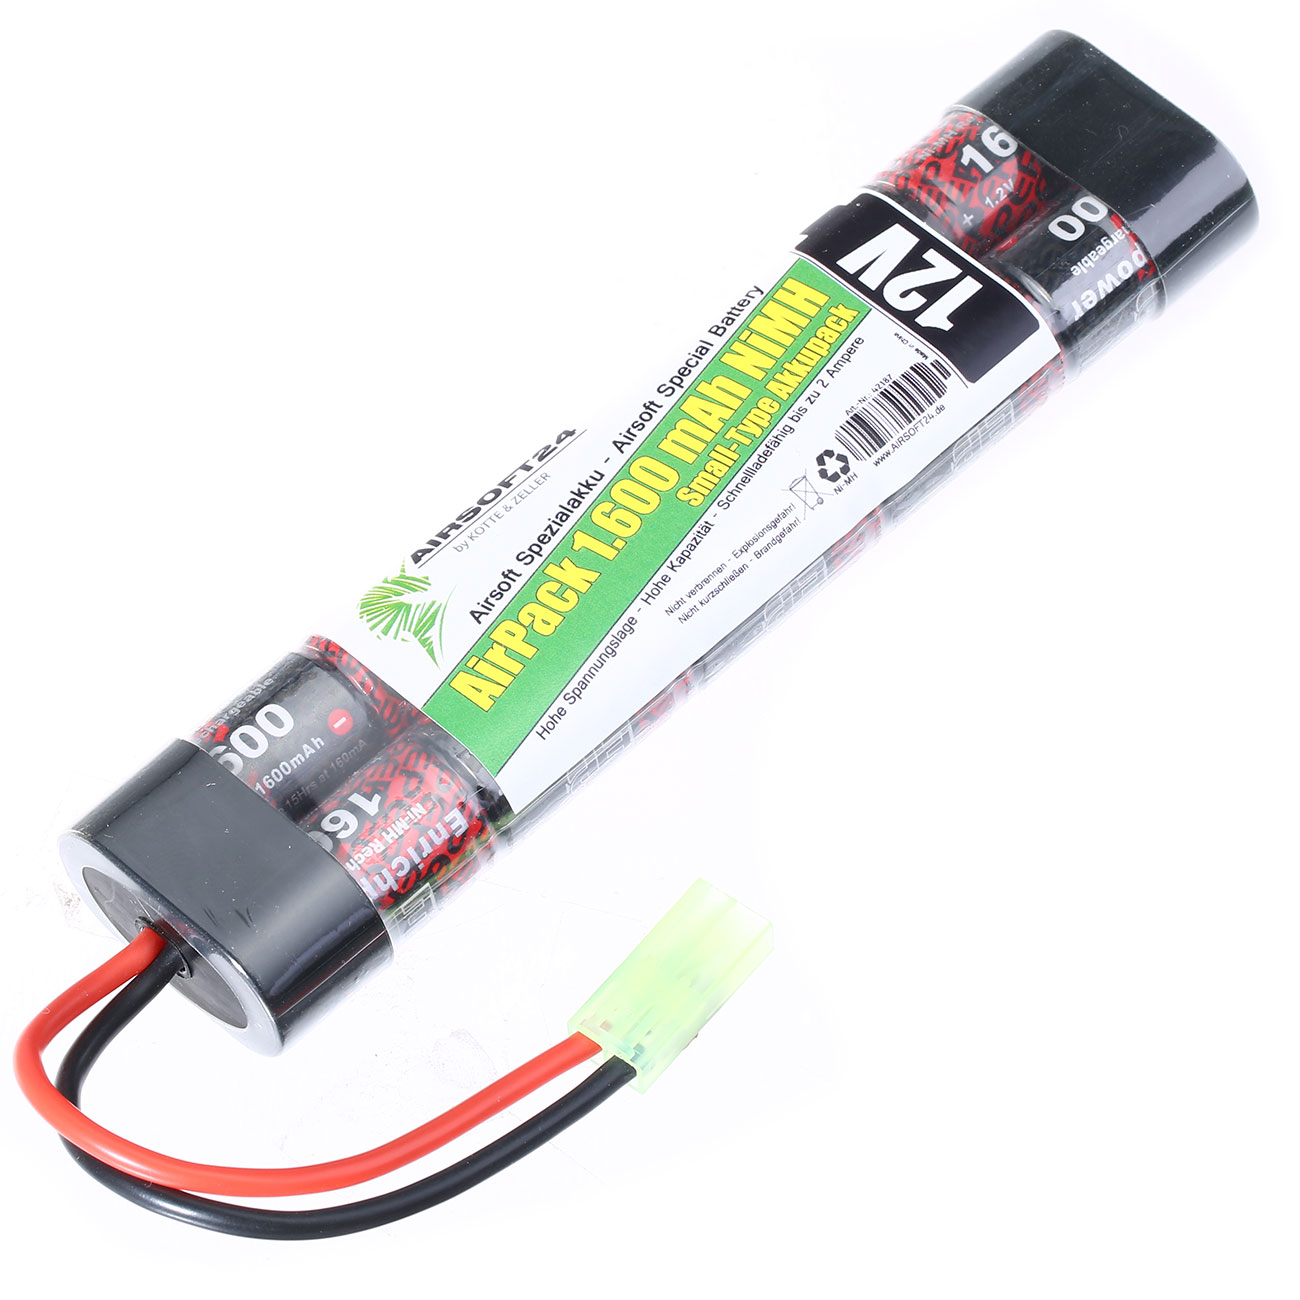 Airsoft24 AirPack Akku 12V 1600mAh NiMH Small-Type mit Mini-Tam Anschluss 0